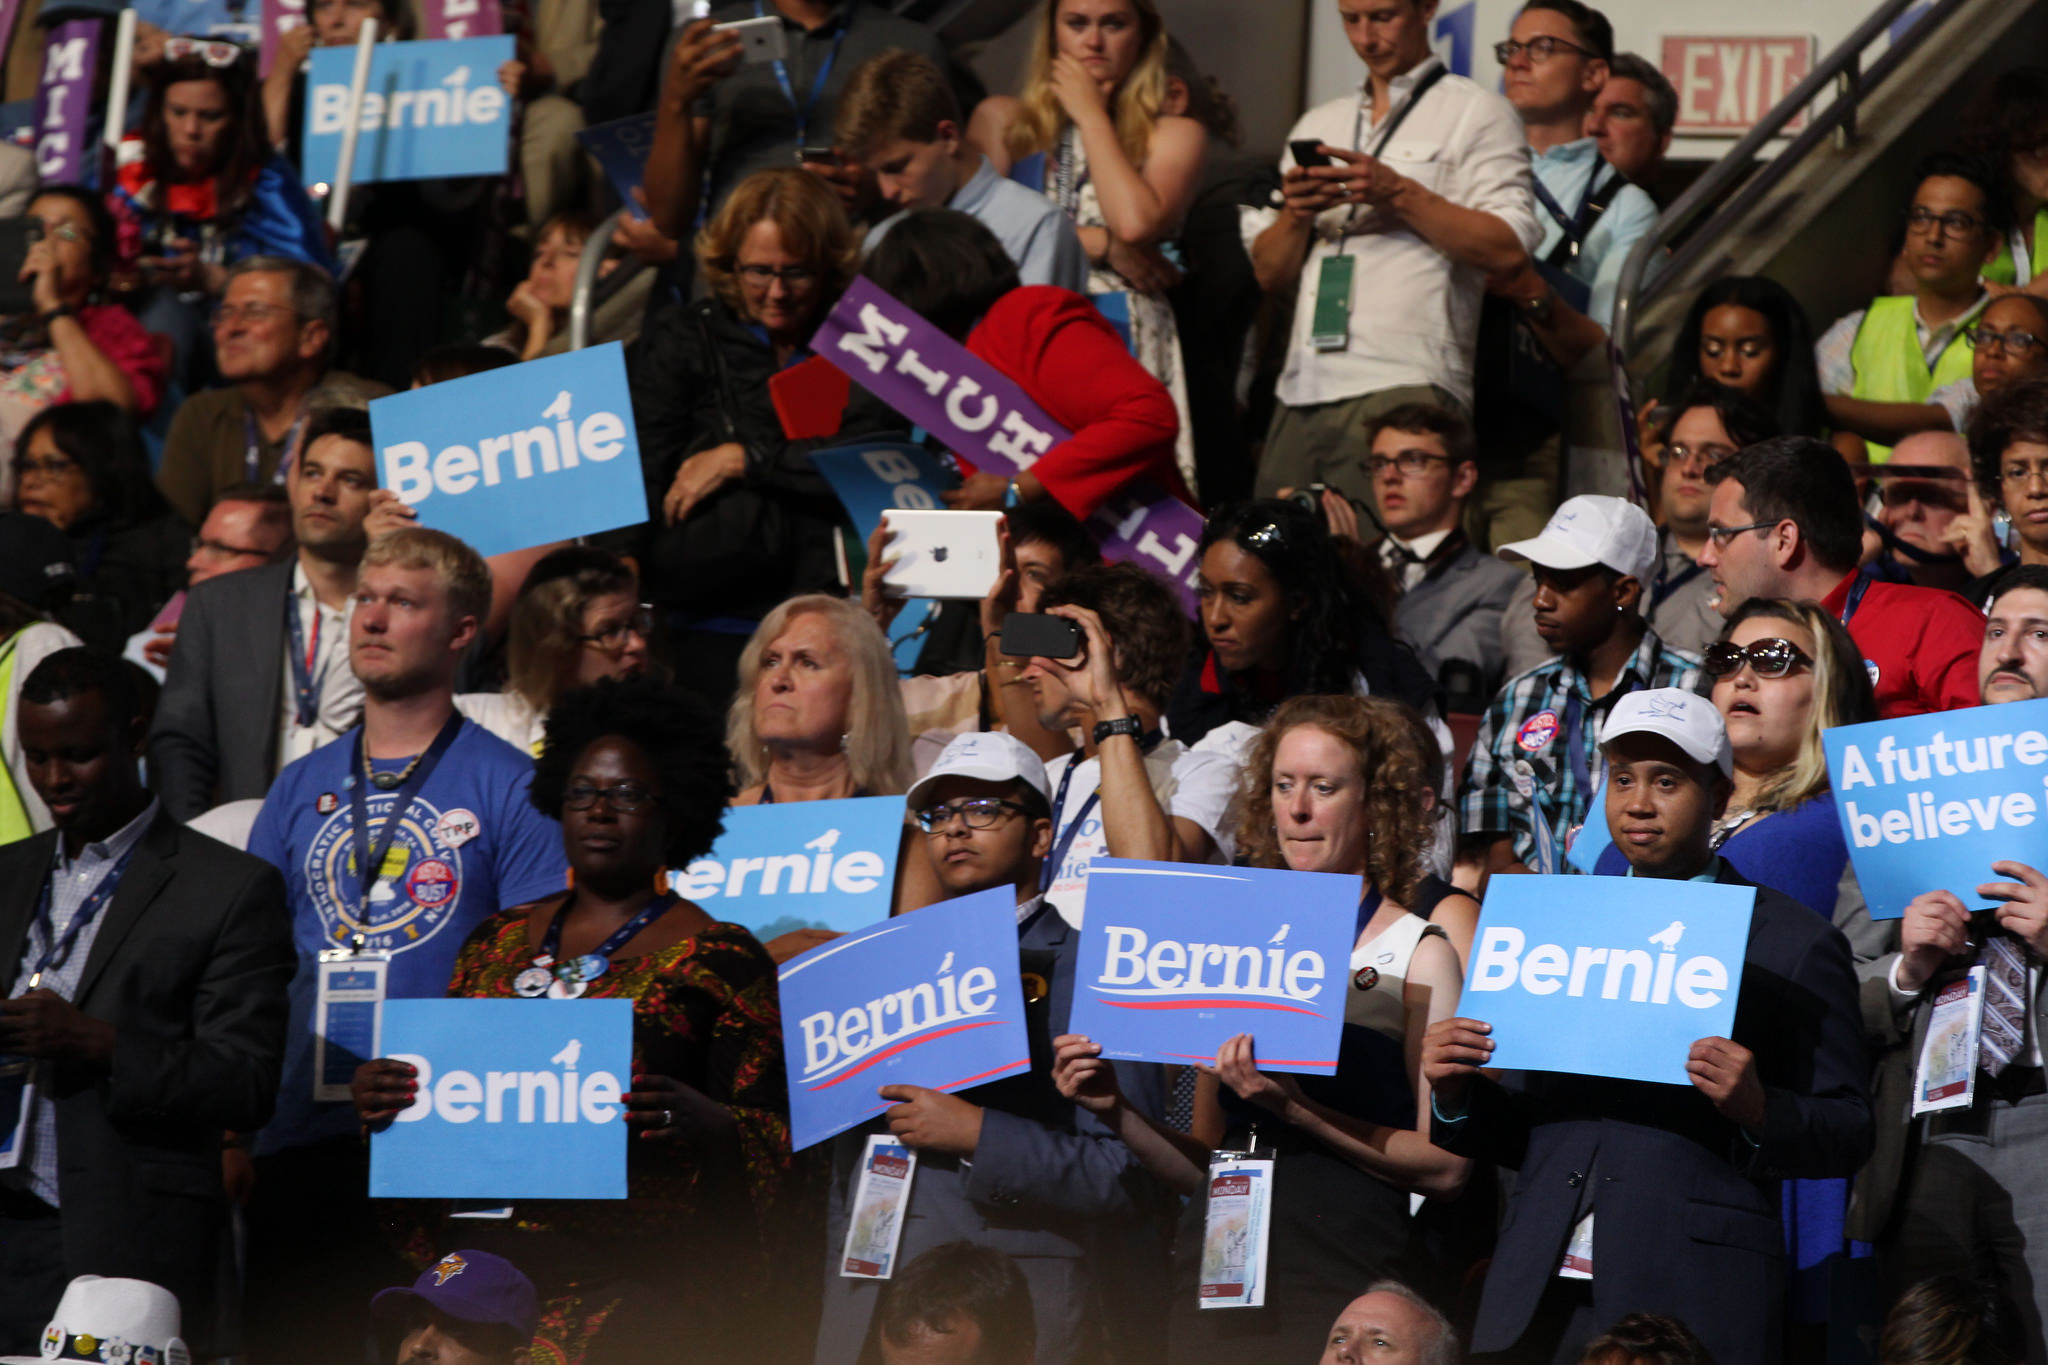 Even though Hillary Clinton clinched the Democratic presidential nomination, Bernie Sanders' supporters were highly visible at the DNC.